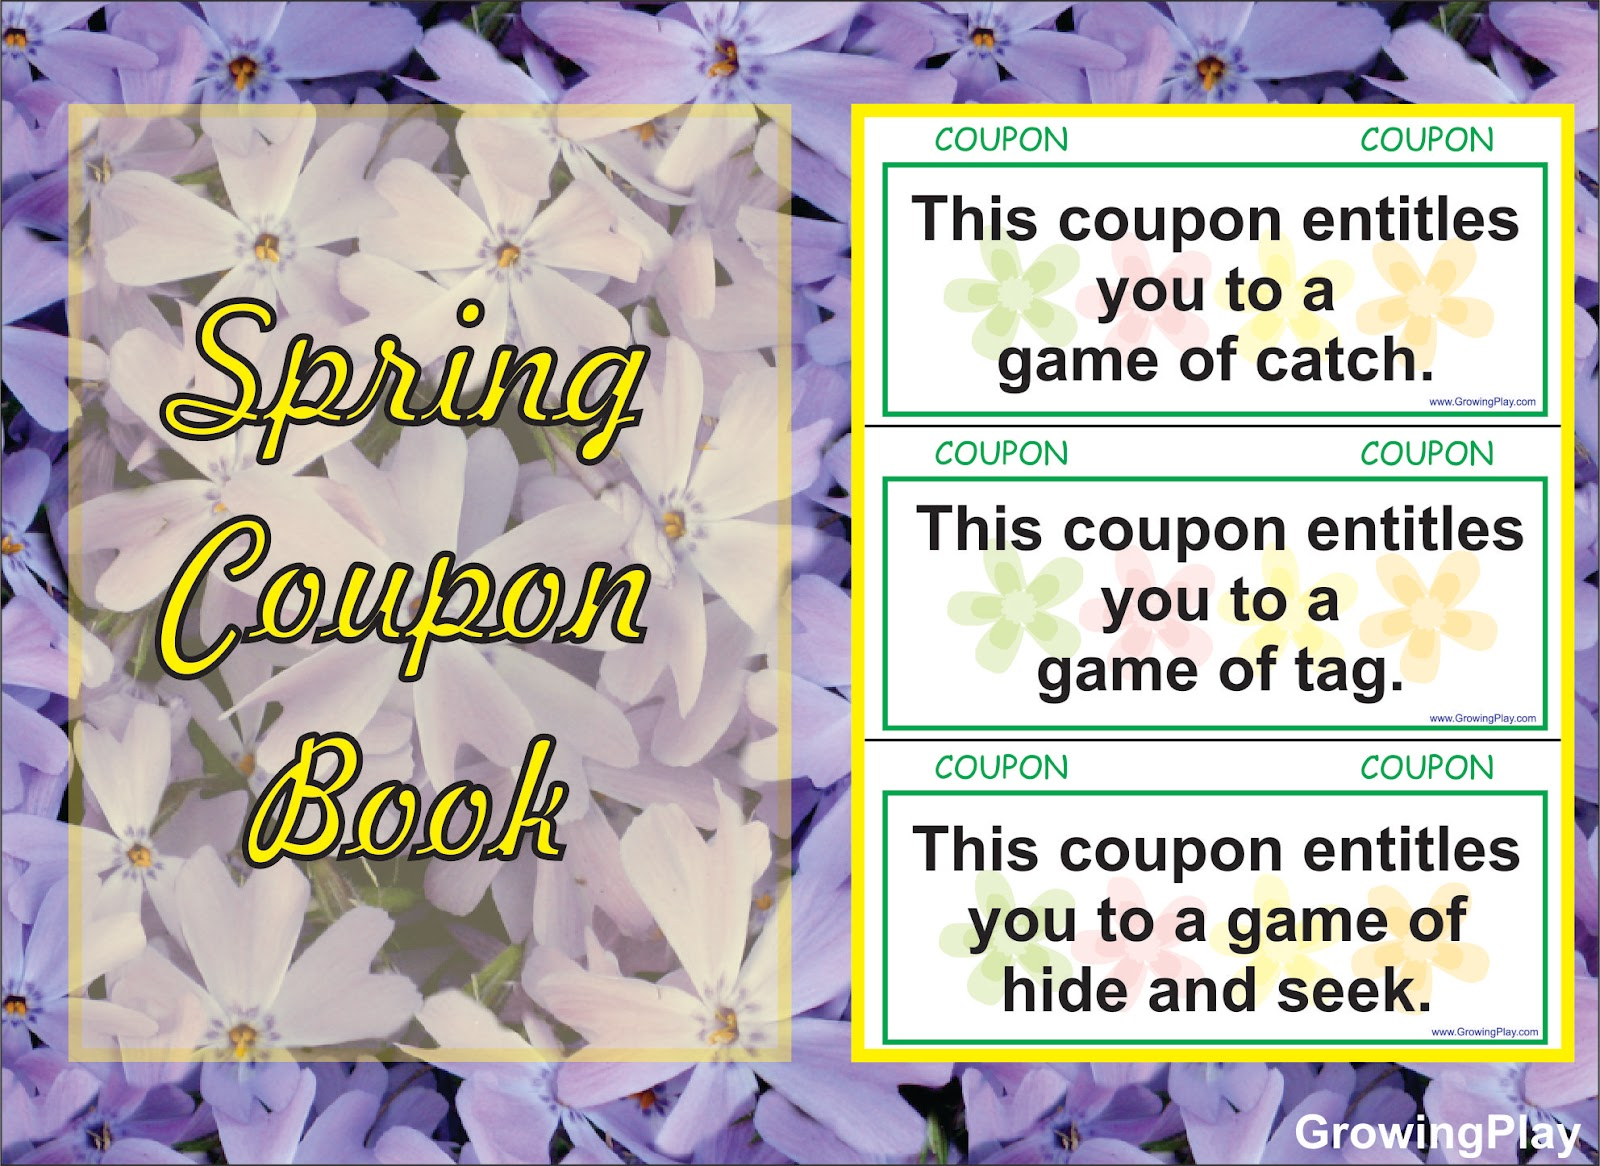 Dutch springs discount coupons